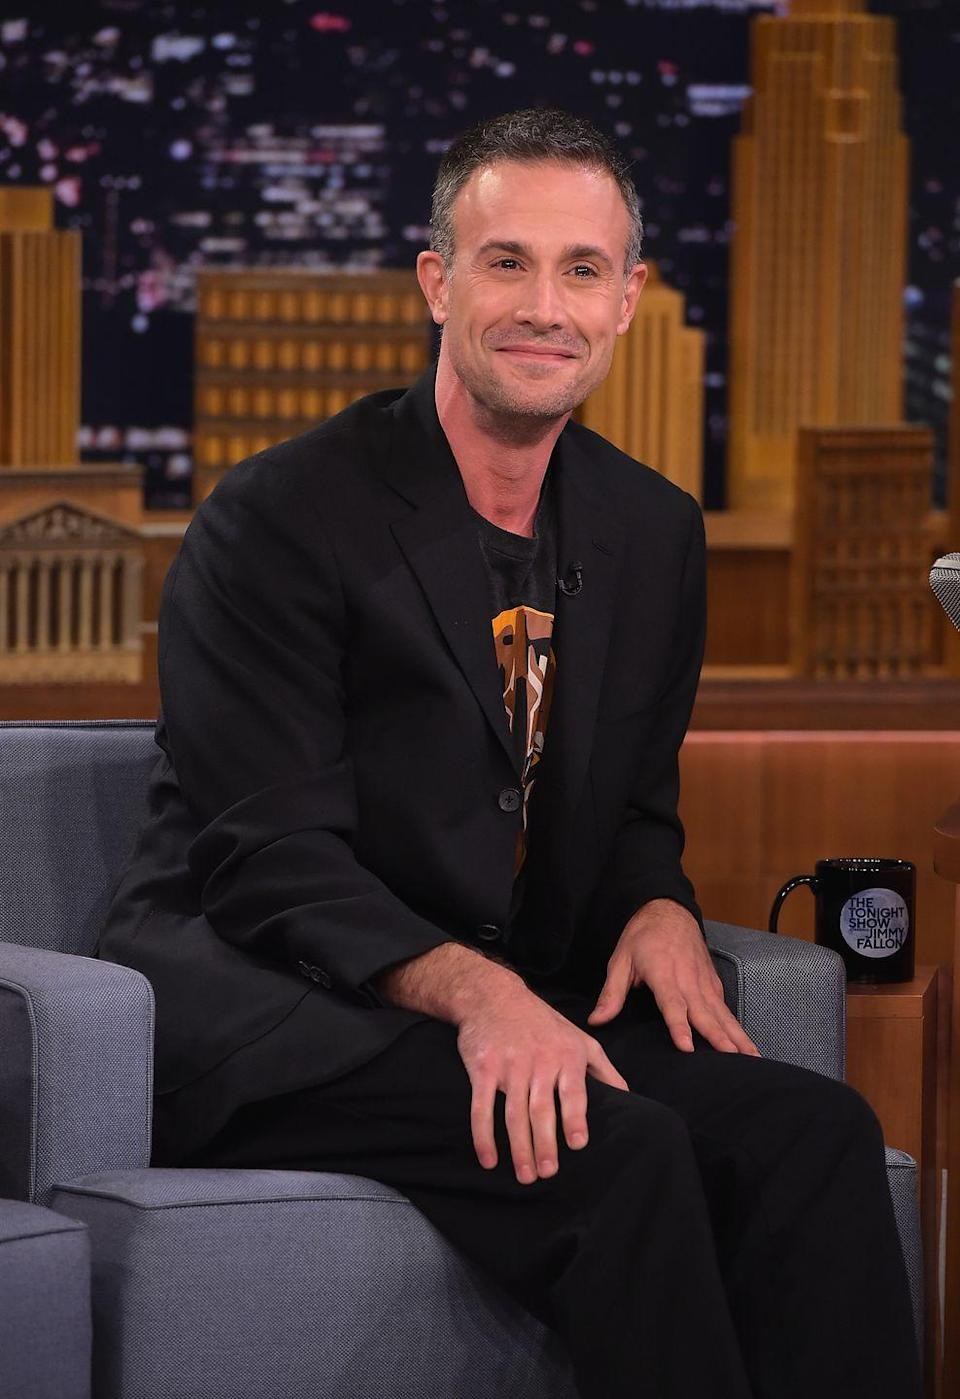 <p>As the son of the late American stand-up comedian, Freddie Prinze Jr. achieved a successful career as an actor in the 1990's and was named 1996's Mr. Golden Globe. </p>